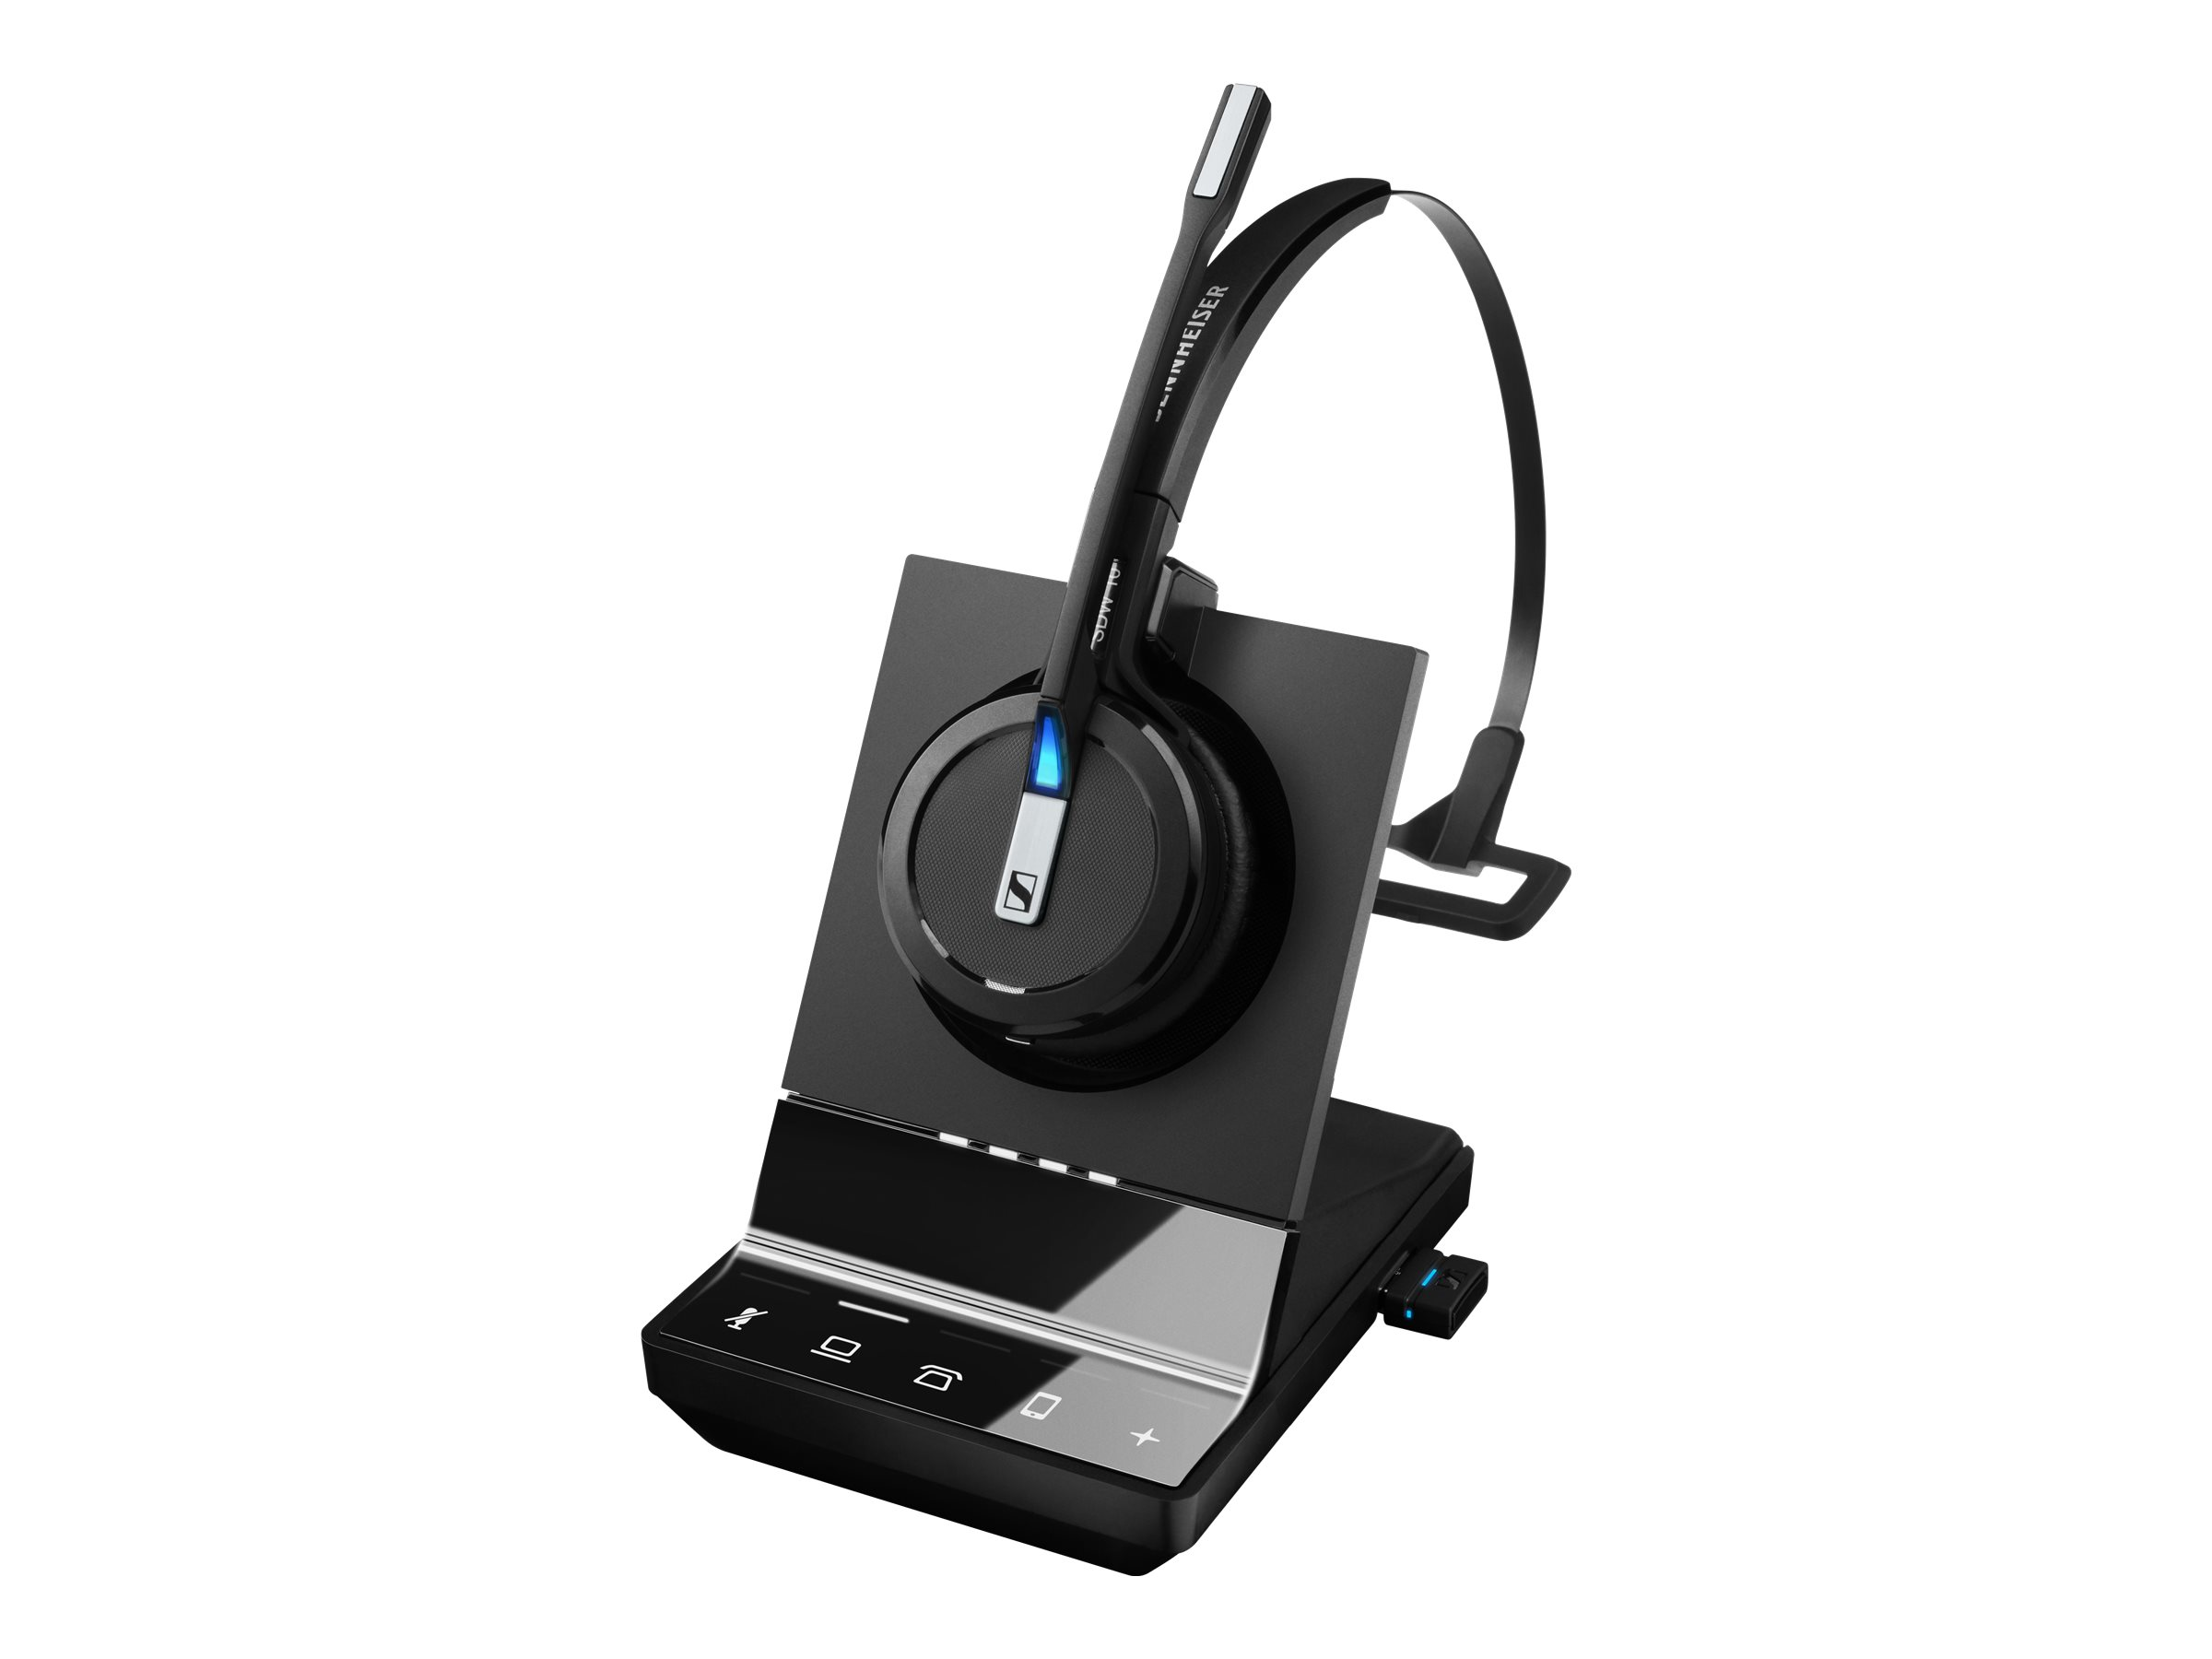 Sennheiser SDW 5016 - wireless headset system - US